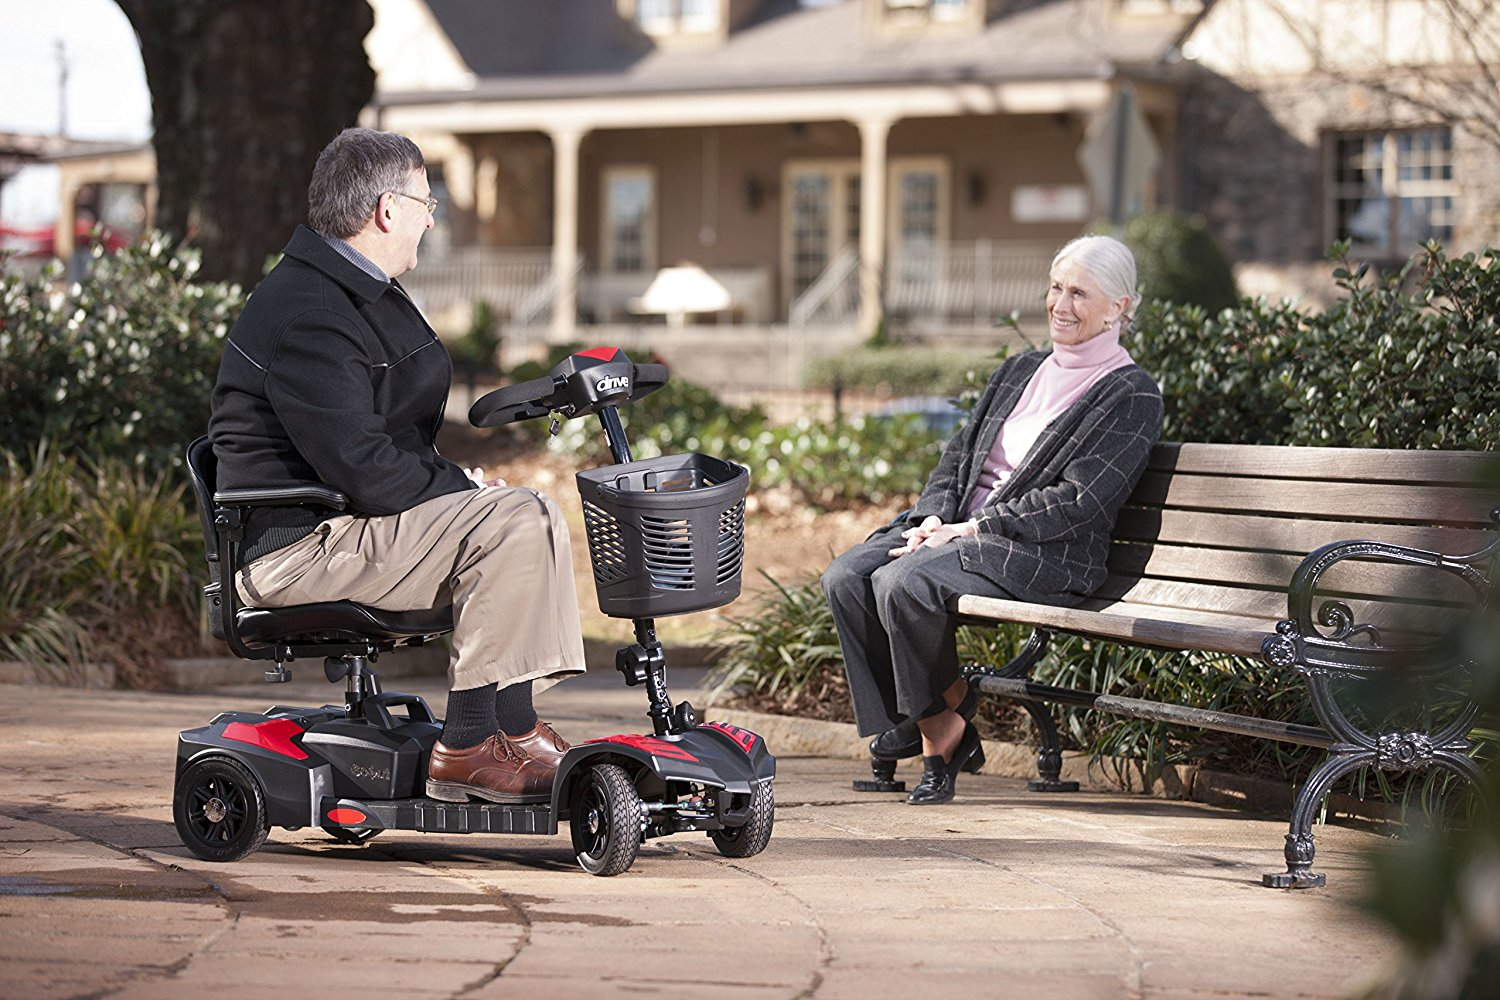 Top 10 Best Mobility Scooters Reviews - Top Best Pro Review